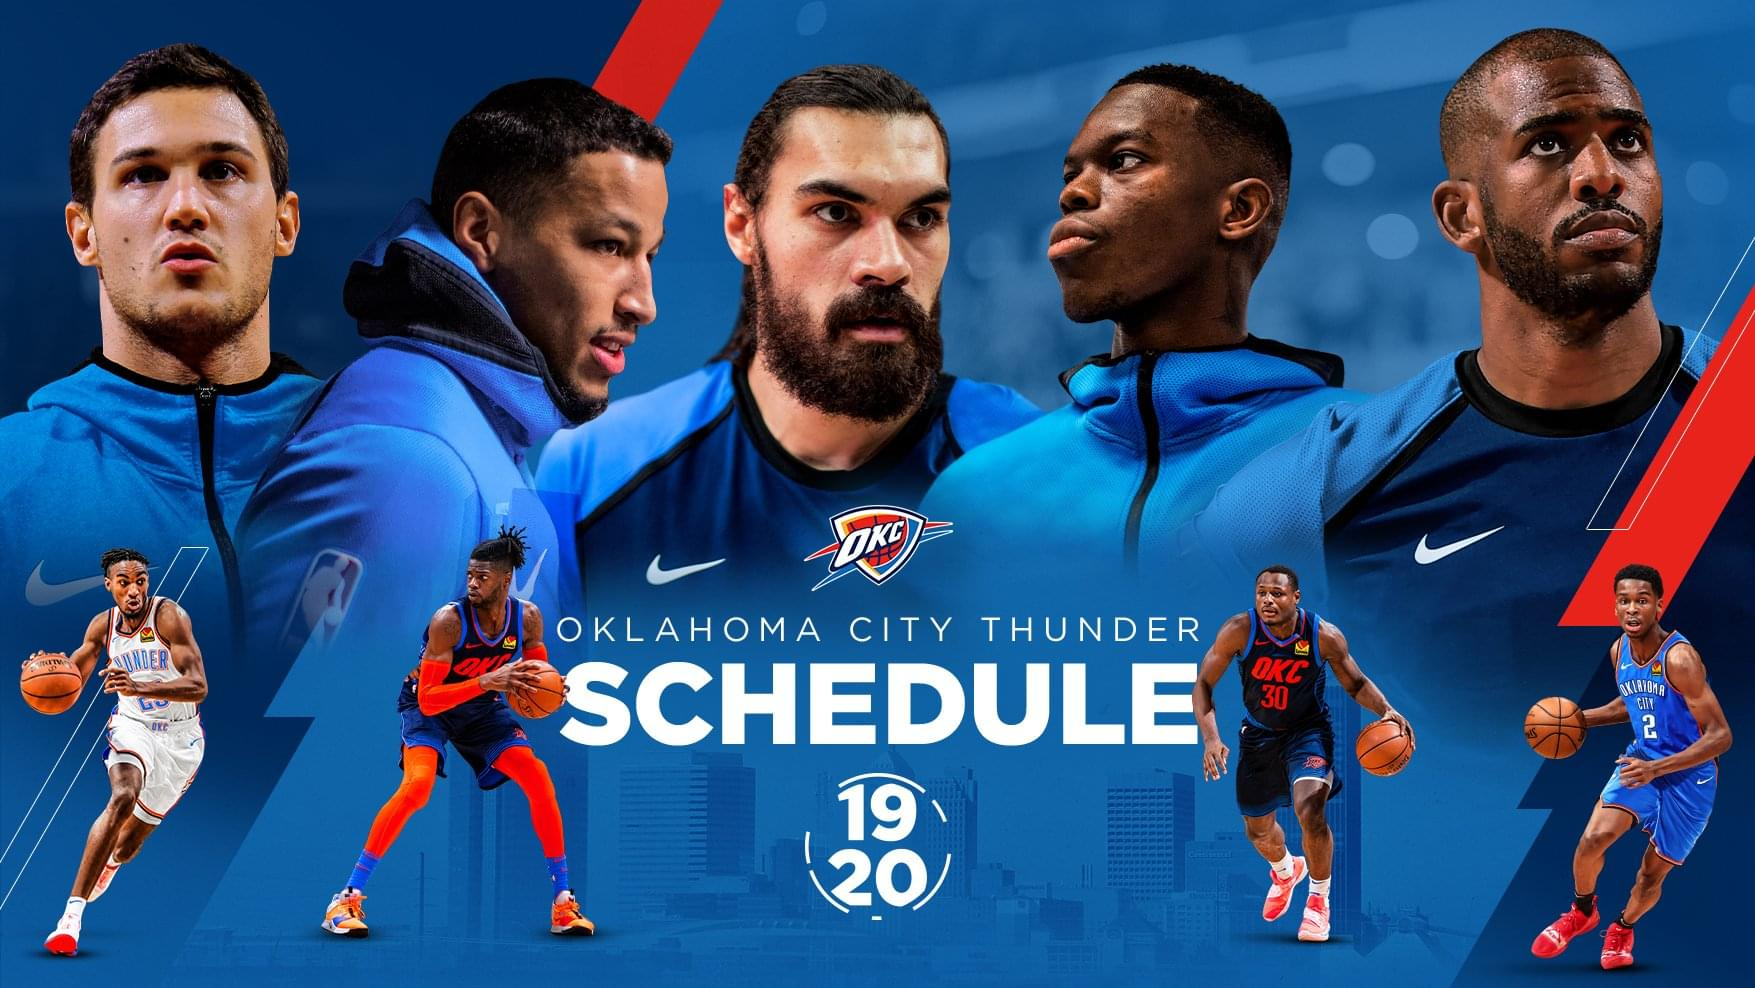 5 Must-Go-To Games for Thunder Fans